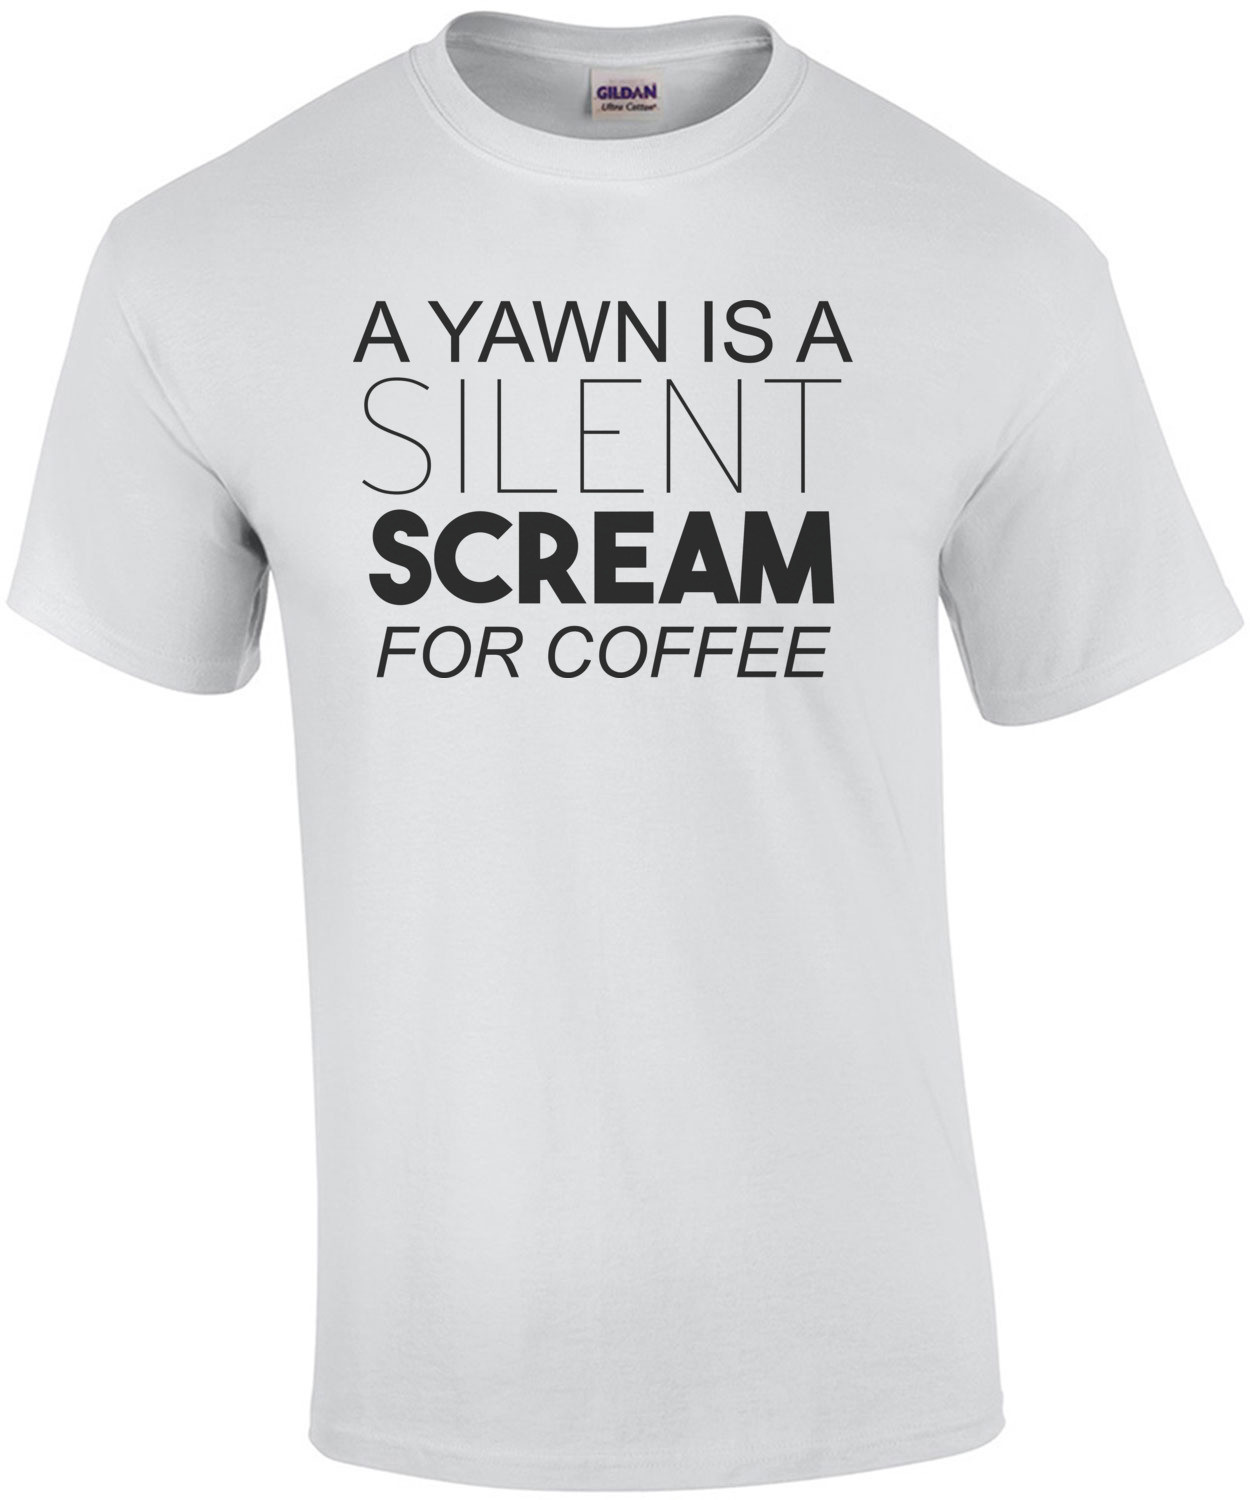 A yawn is a silent scream for coffee. shirt